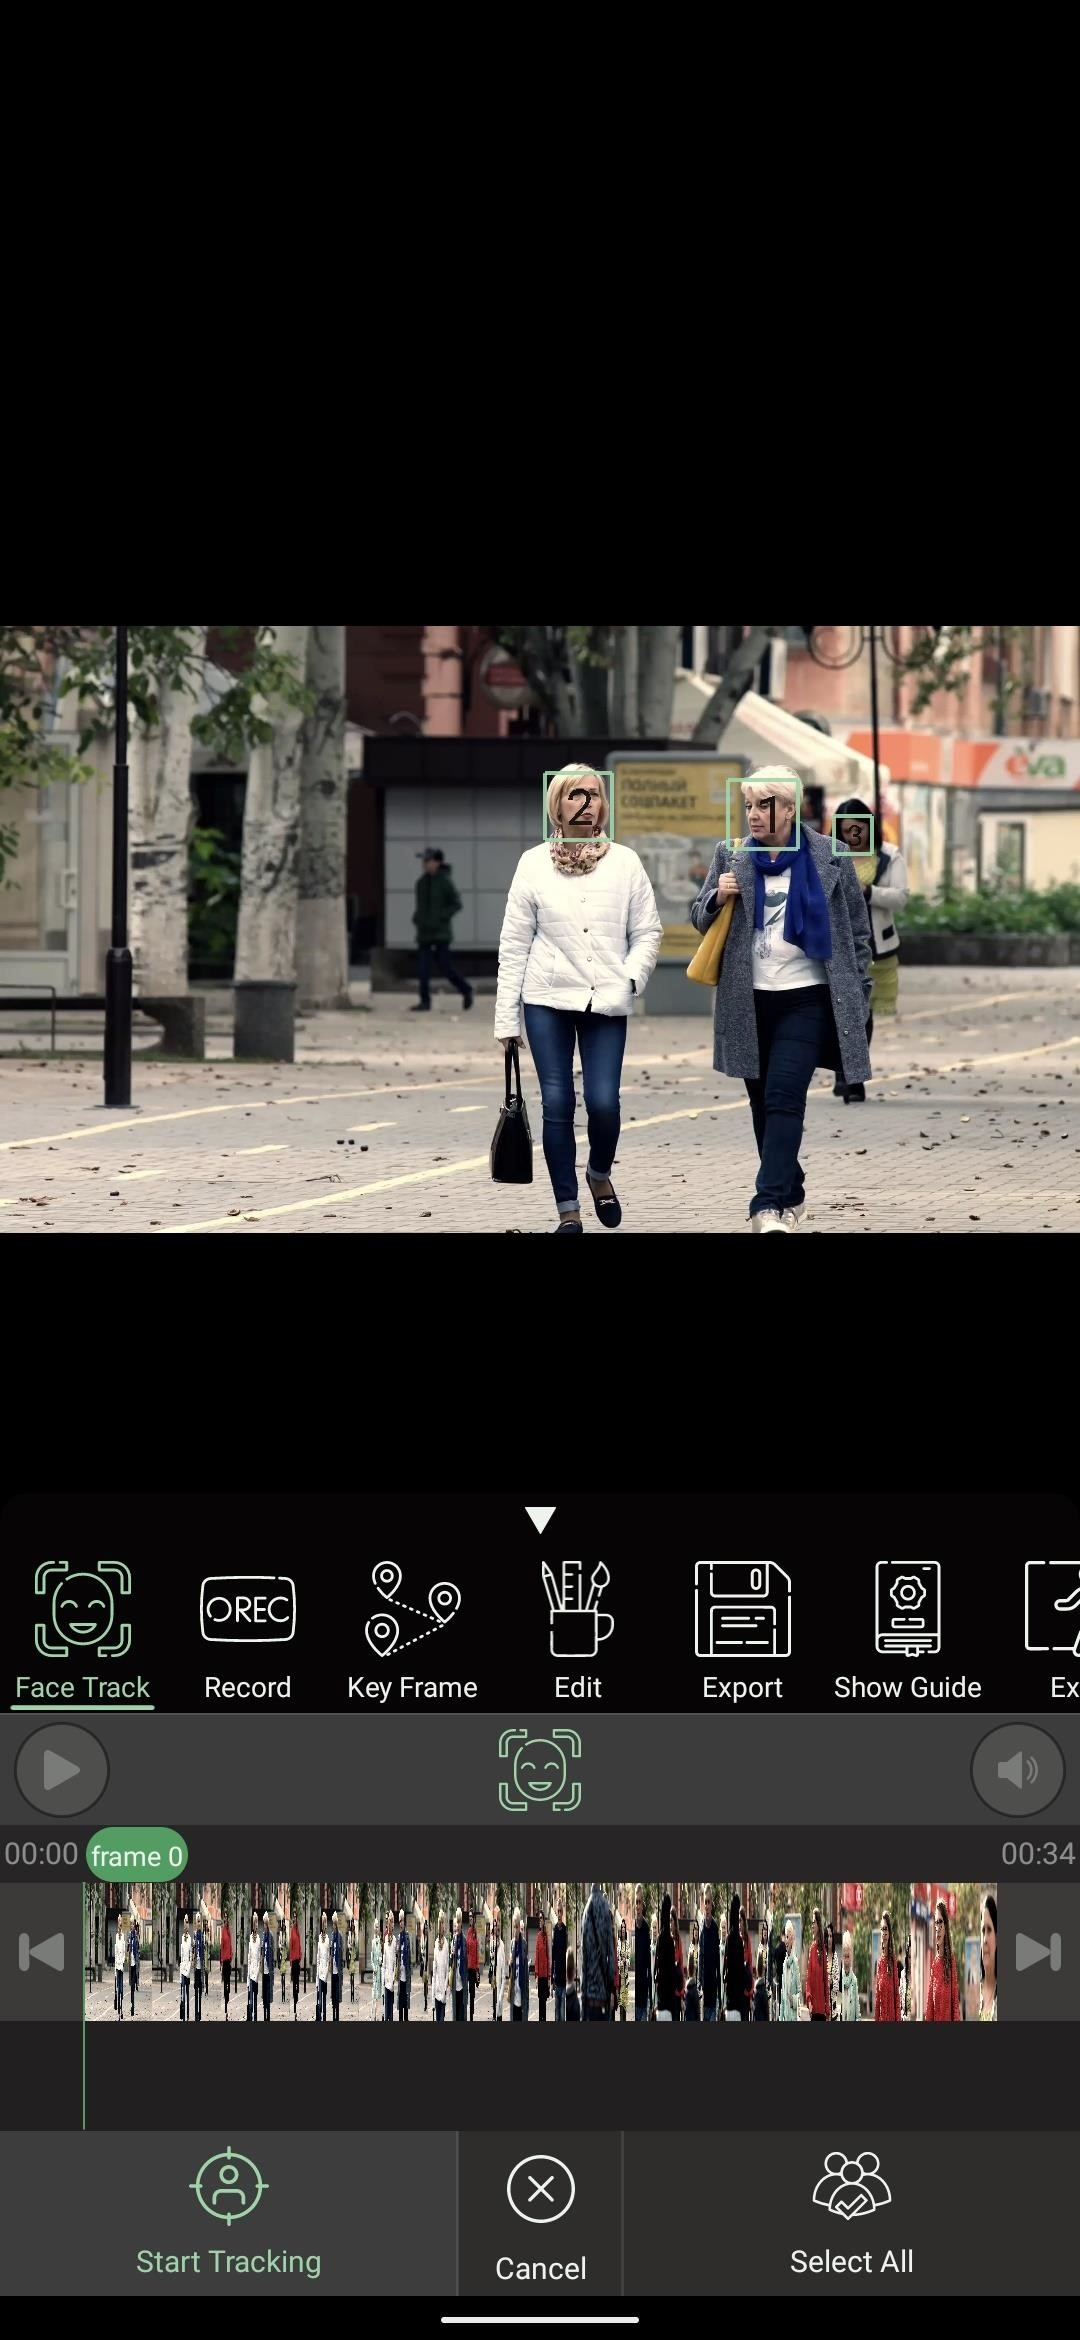 The easiest way to blur faces in videos on your Android phone